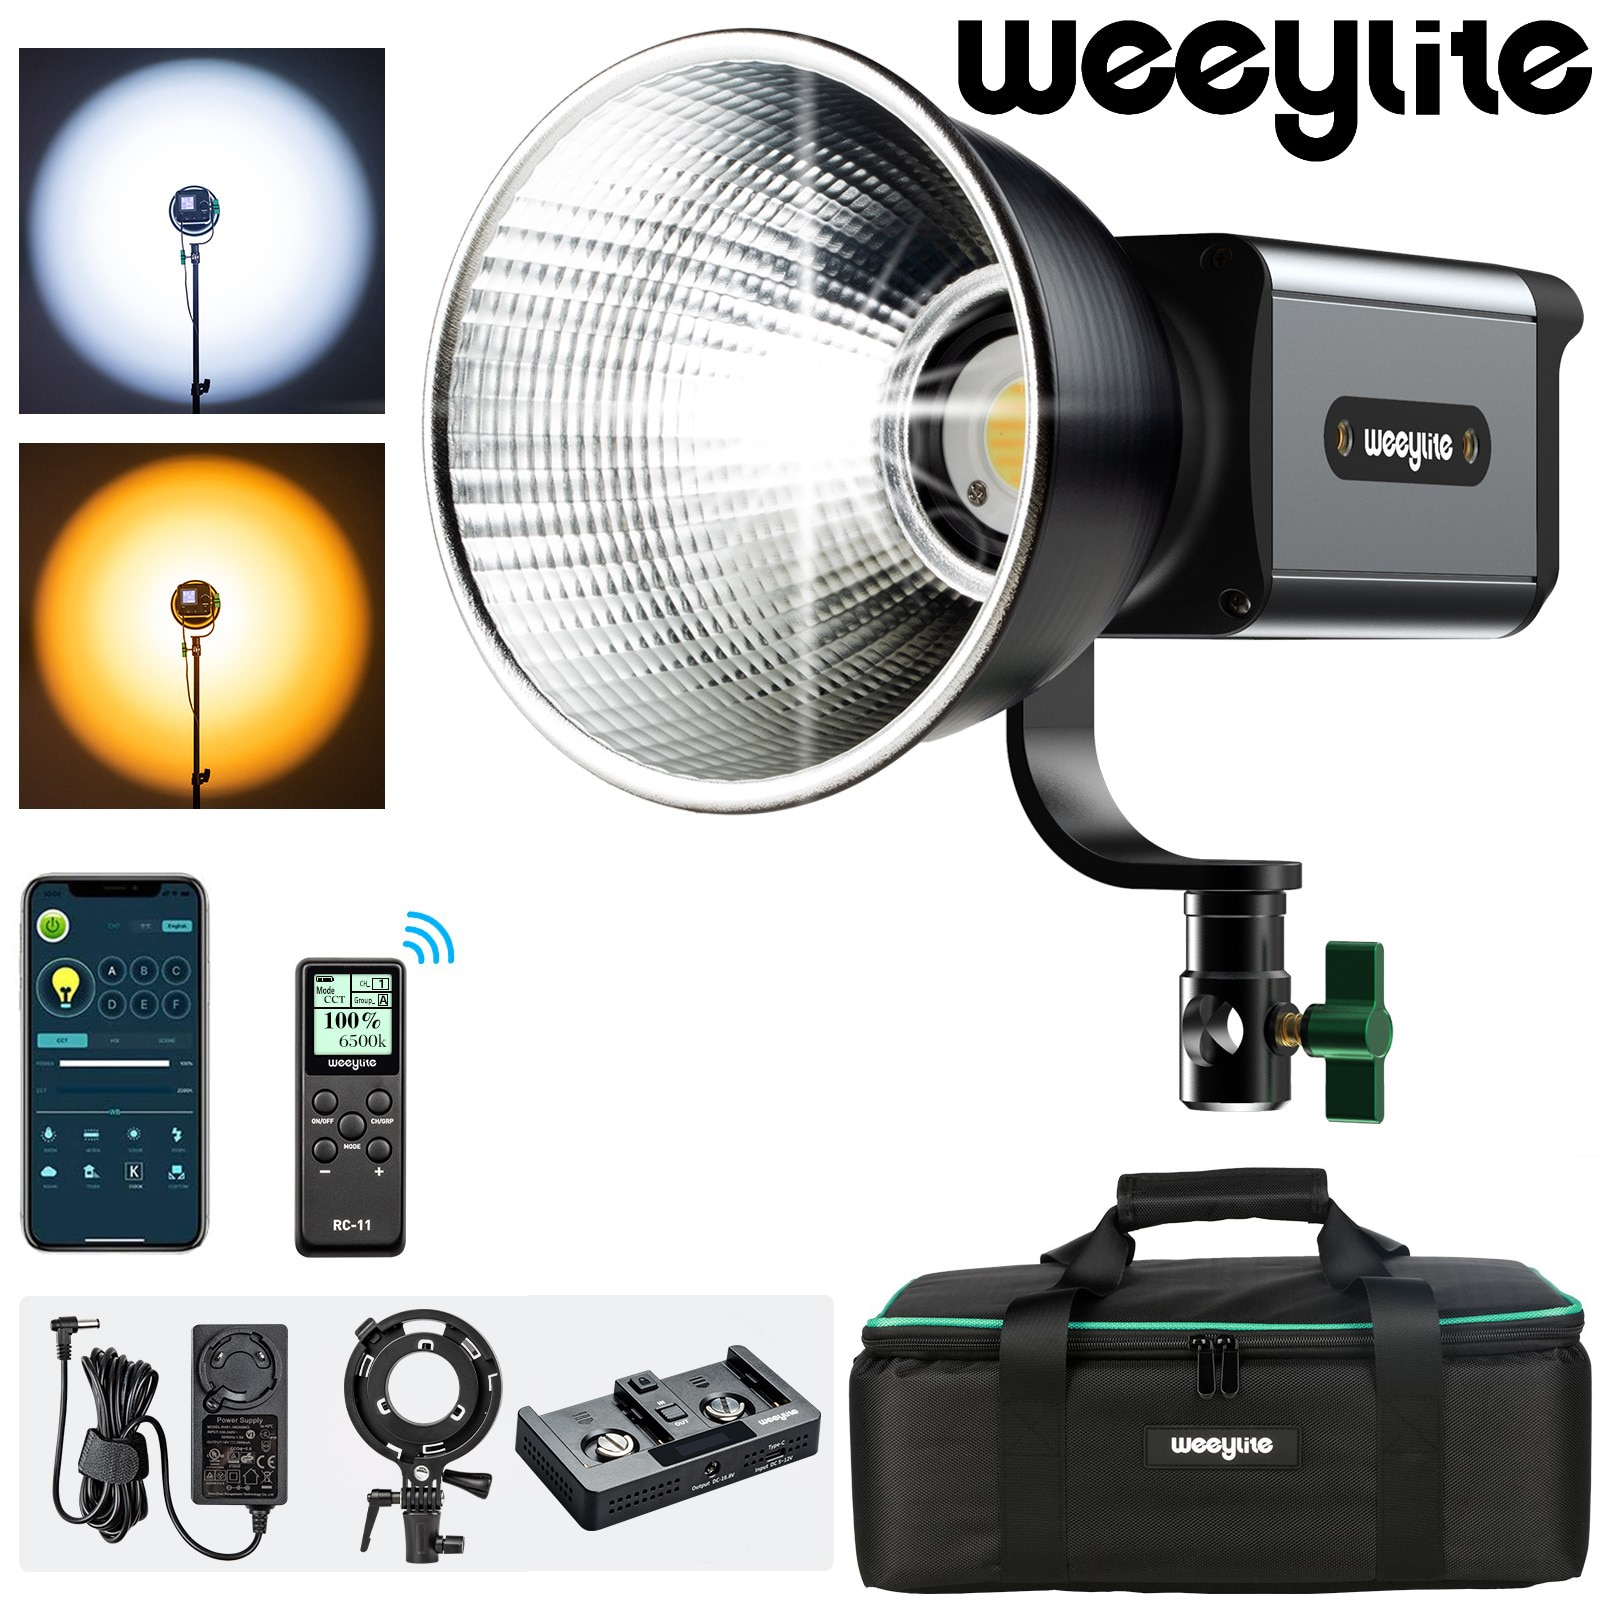 godox sl series led continuous video light slb60w 60w 8700mah li ion battery with remote control charger for photography Weeylite Ninja200 60W COB Bicolor LED Video Light with App Control Continuous Output Light 2800K~8500K Bowens Mount Studio Light